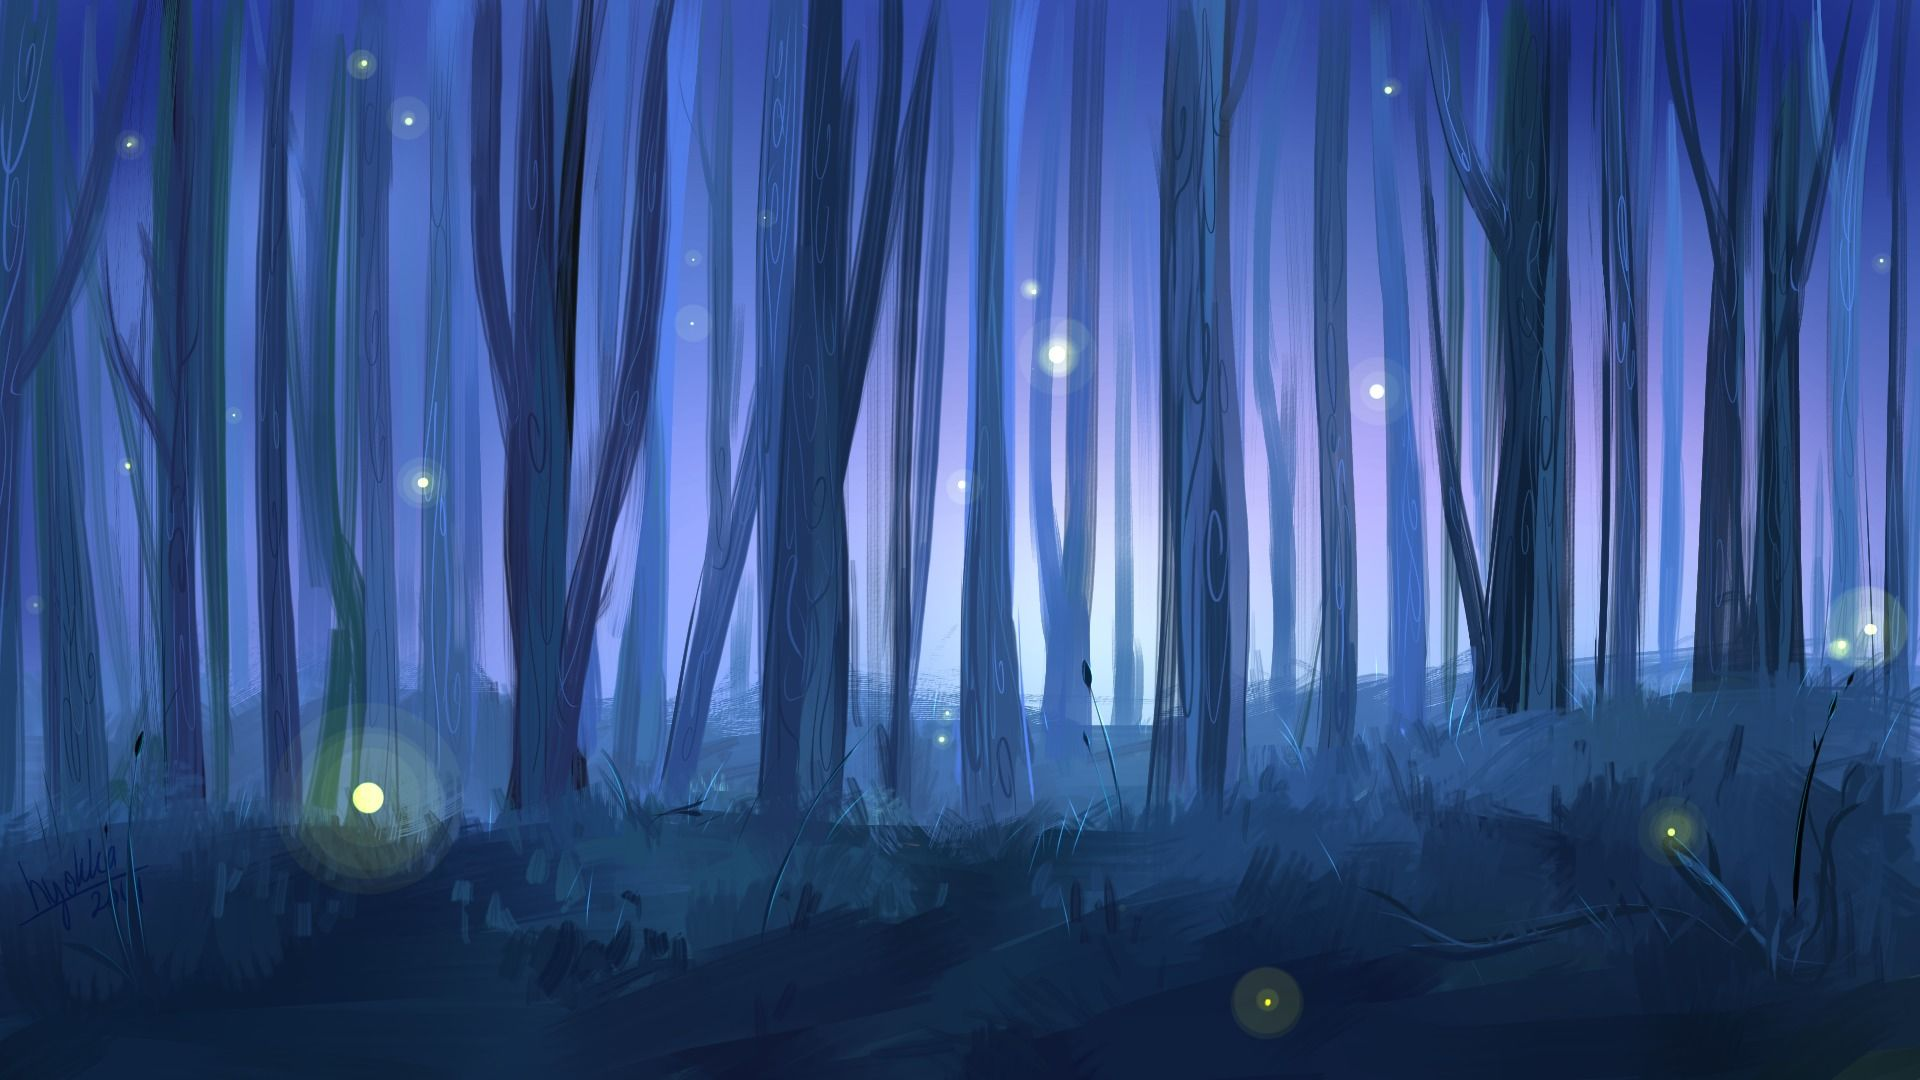 painting of fire flies Google Search Firefly art